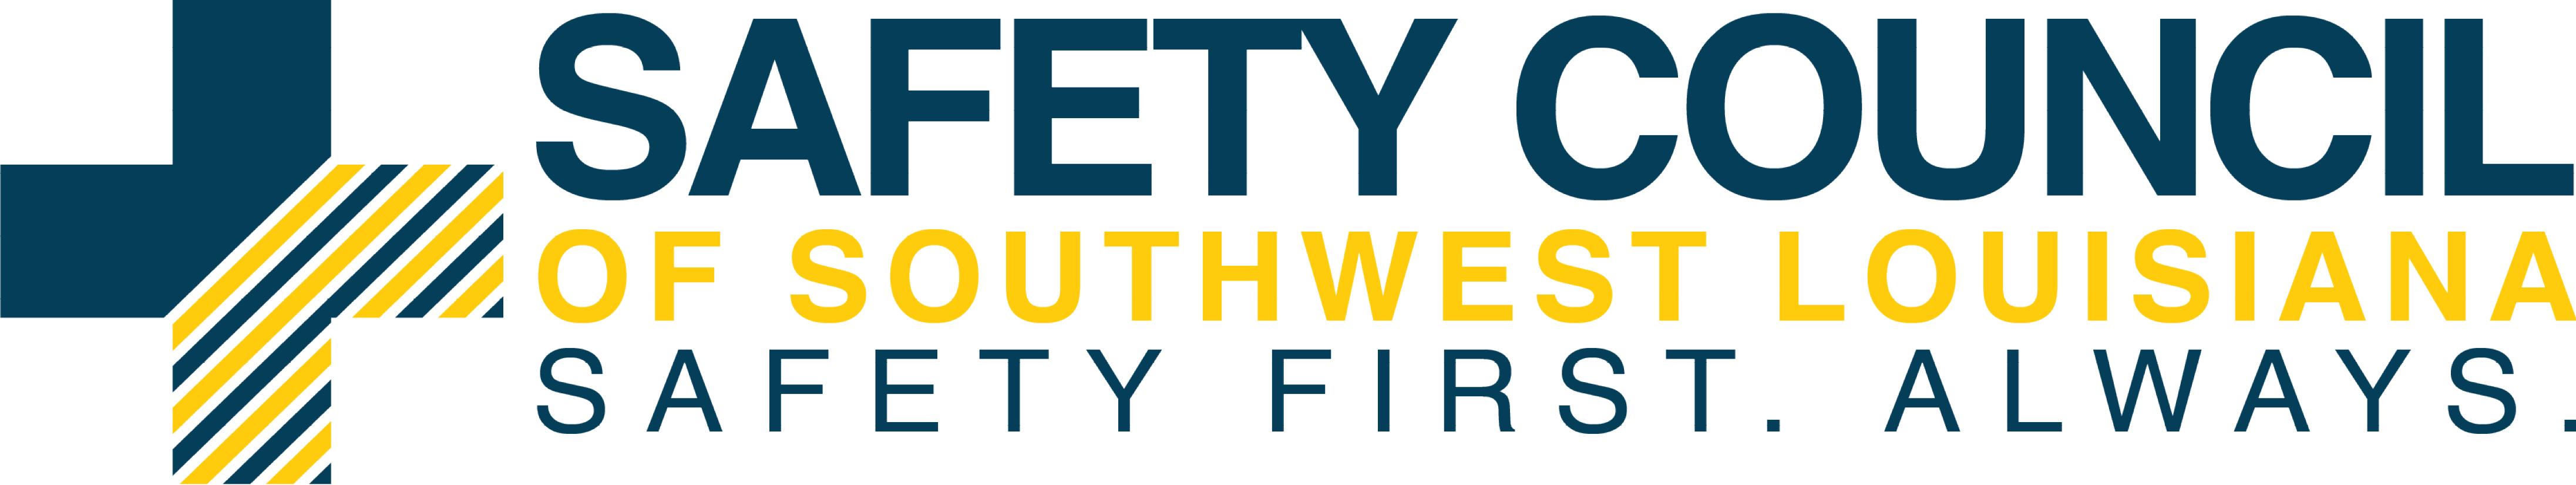 Safety Council of SWLA